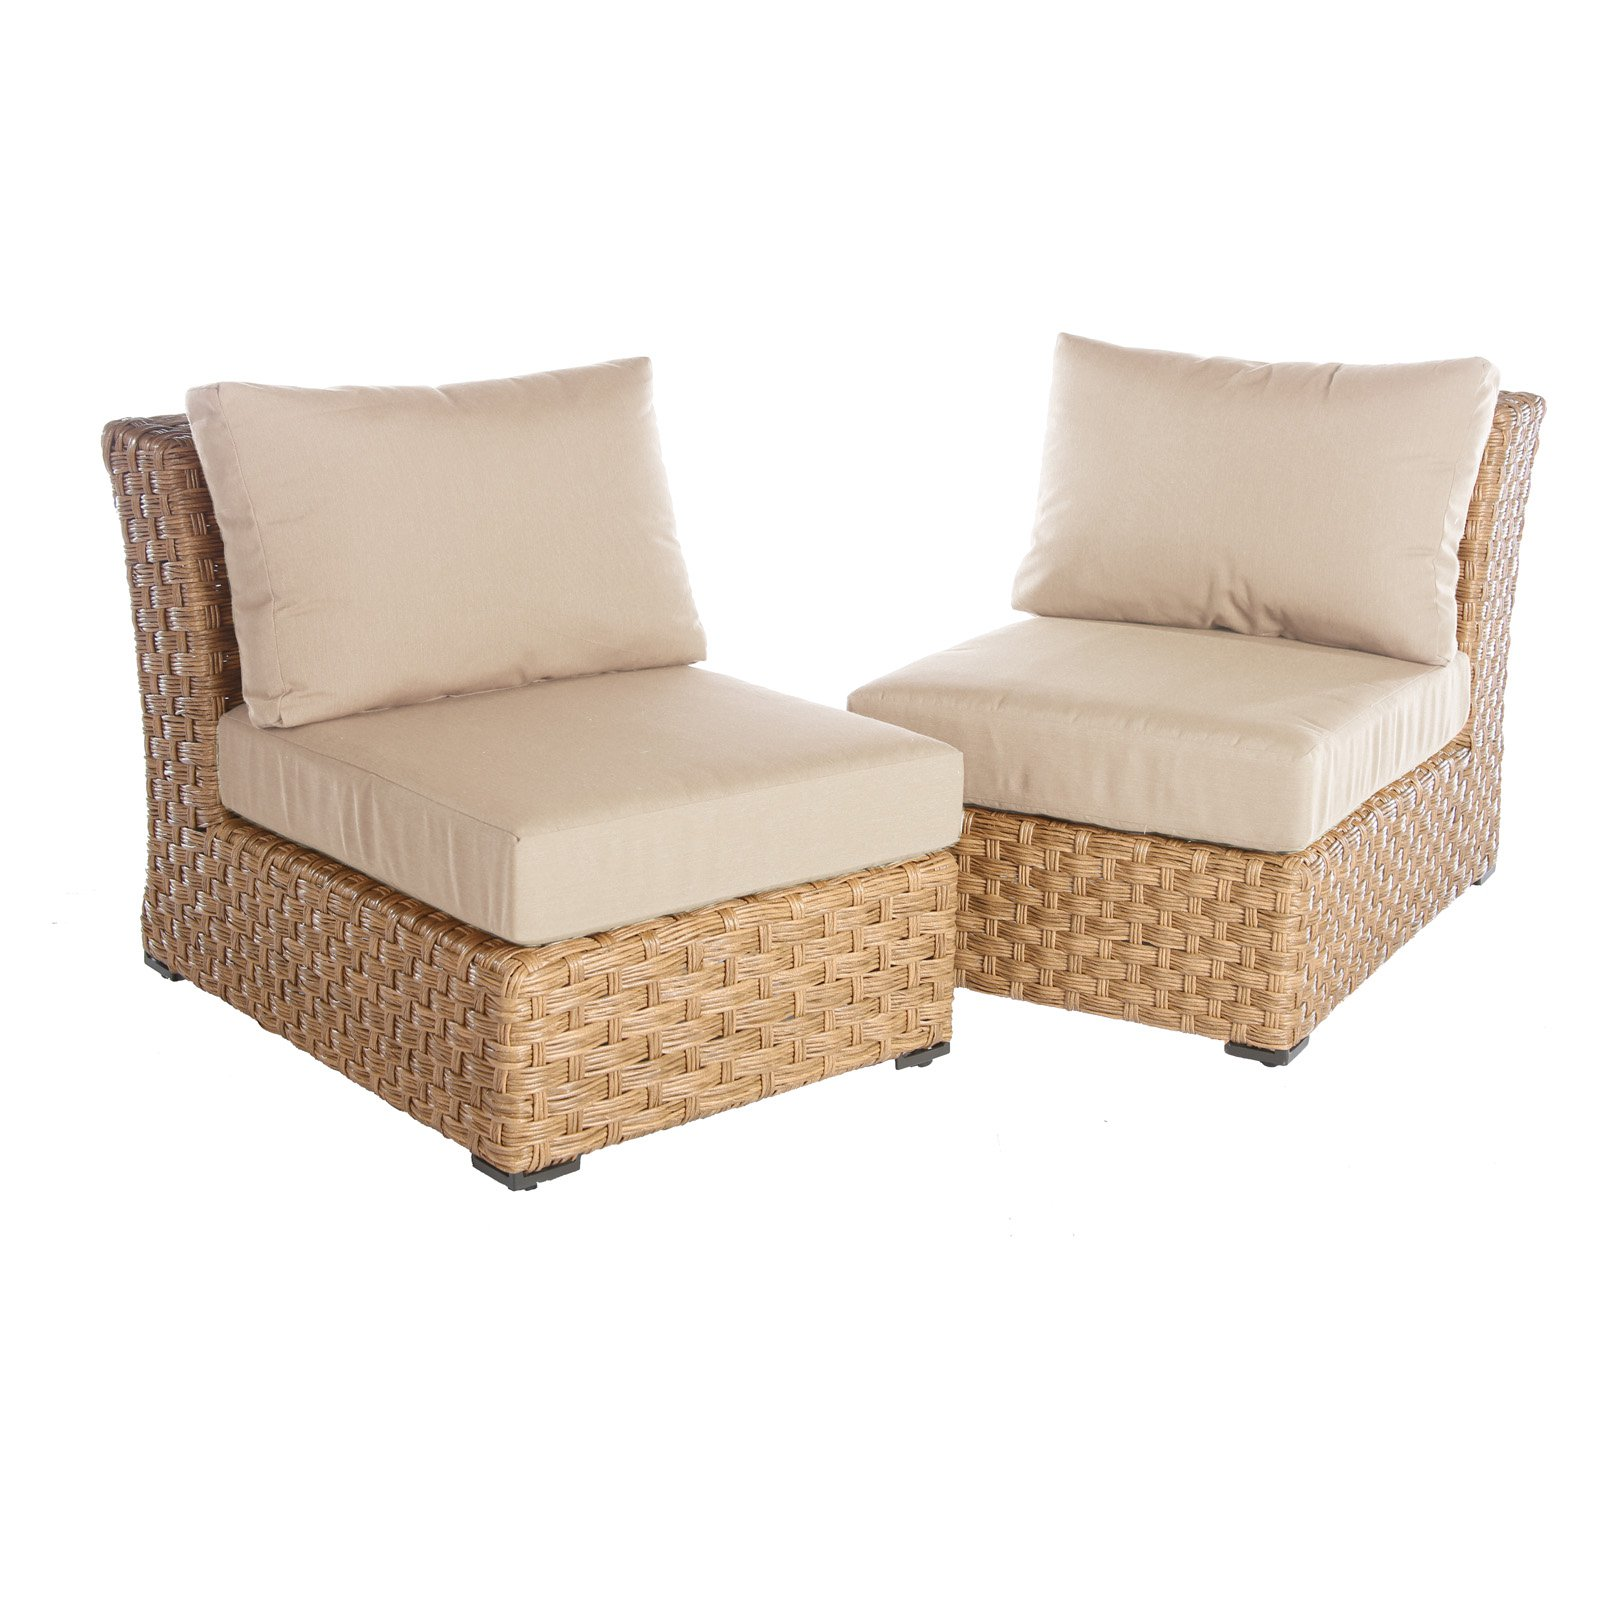 AE Outdoor Elizabeth Armless Chairs with Sunbrella Cushions - Set of 2